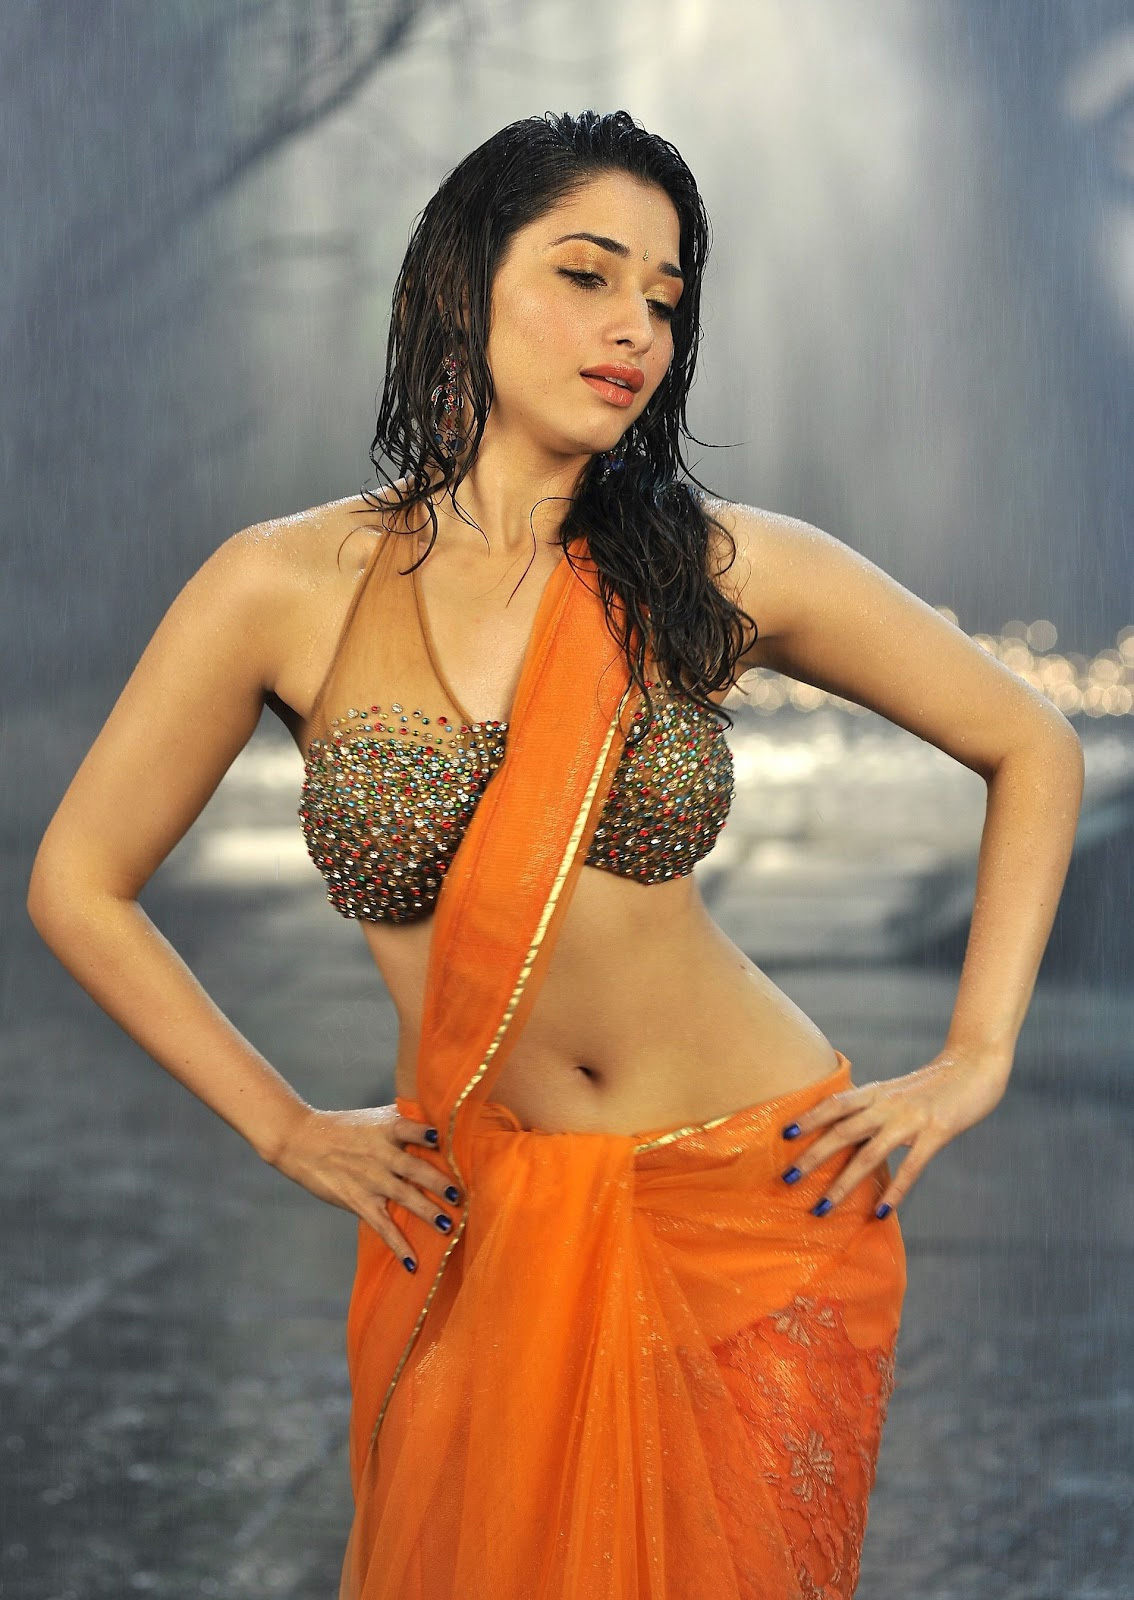 Tamanna Bhatia Beauty Secrets Body Fitness Tips: INDIAN ACTRESS: Tamanna Bhatia Hot Backless Saree In